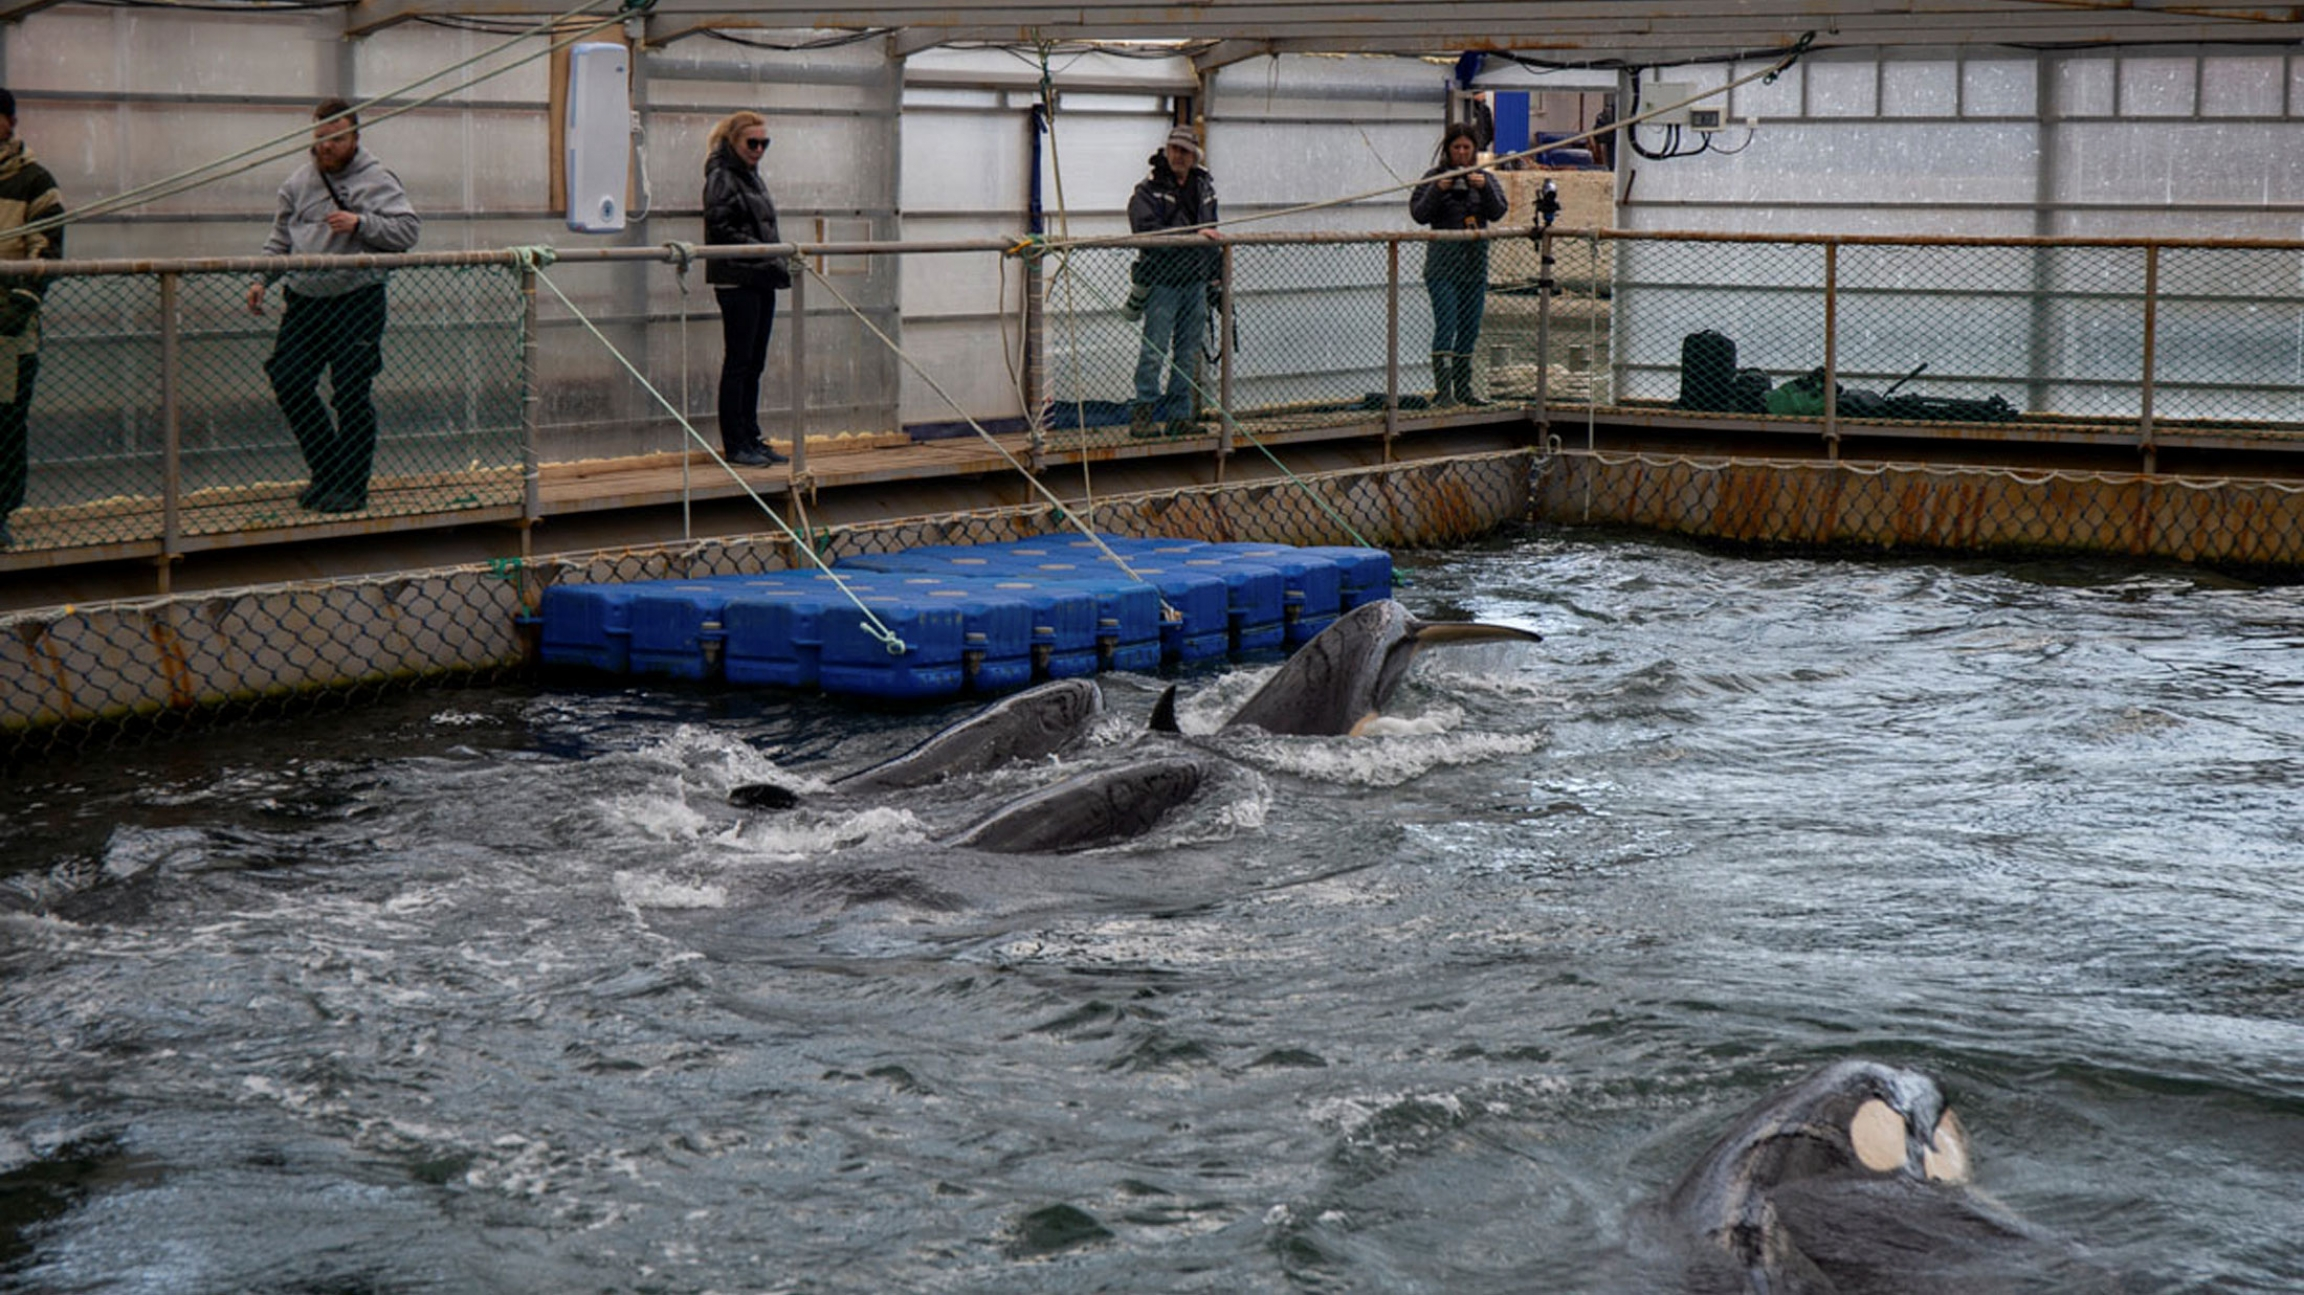 Several whales are seen swimming in the water in a tiny pool surrounded by decking where people are standing